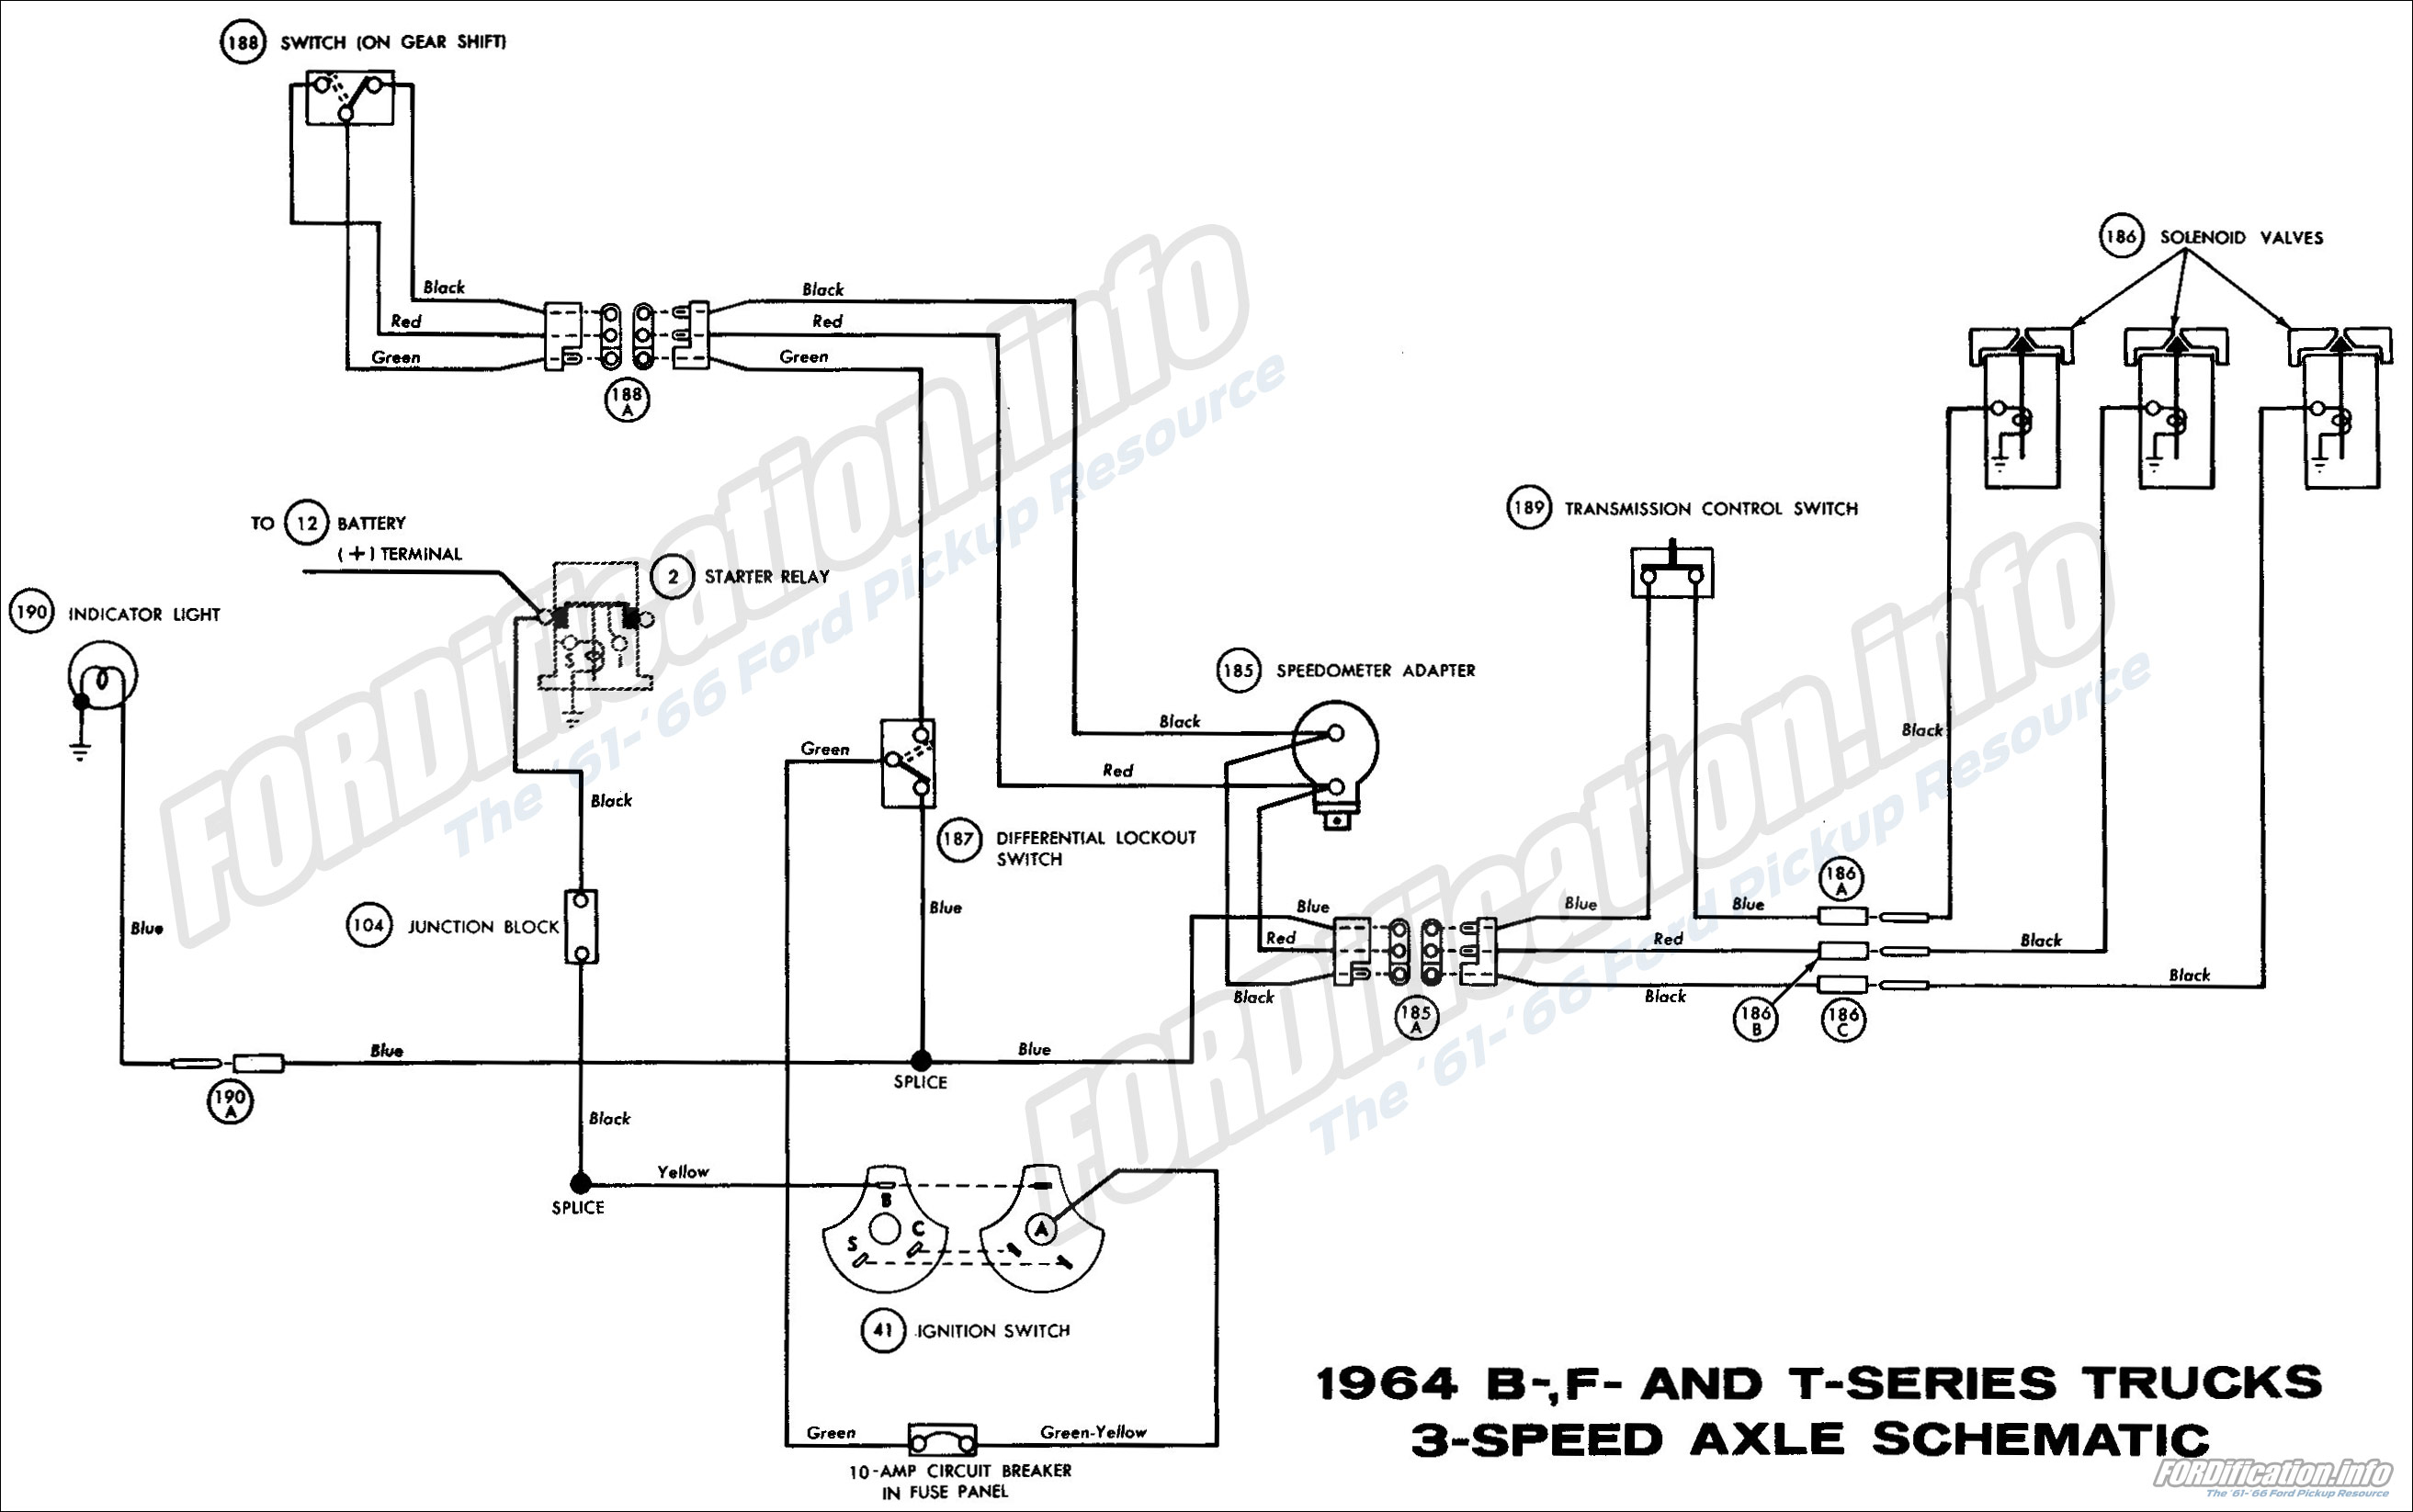 Eaton wiring diagram images